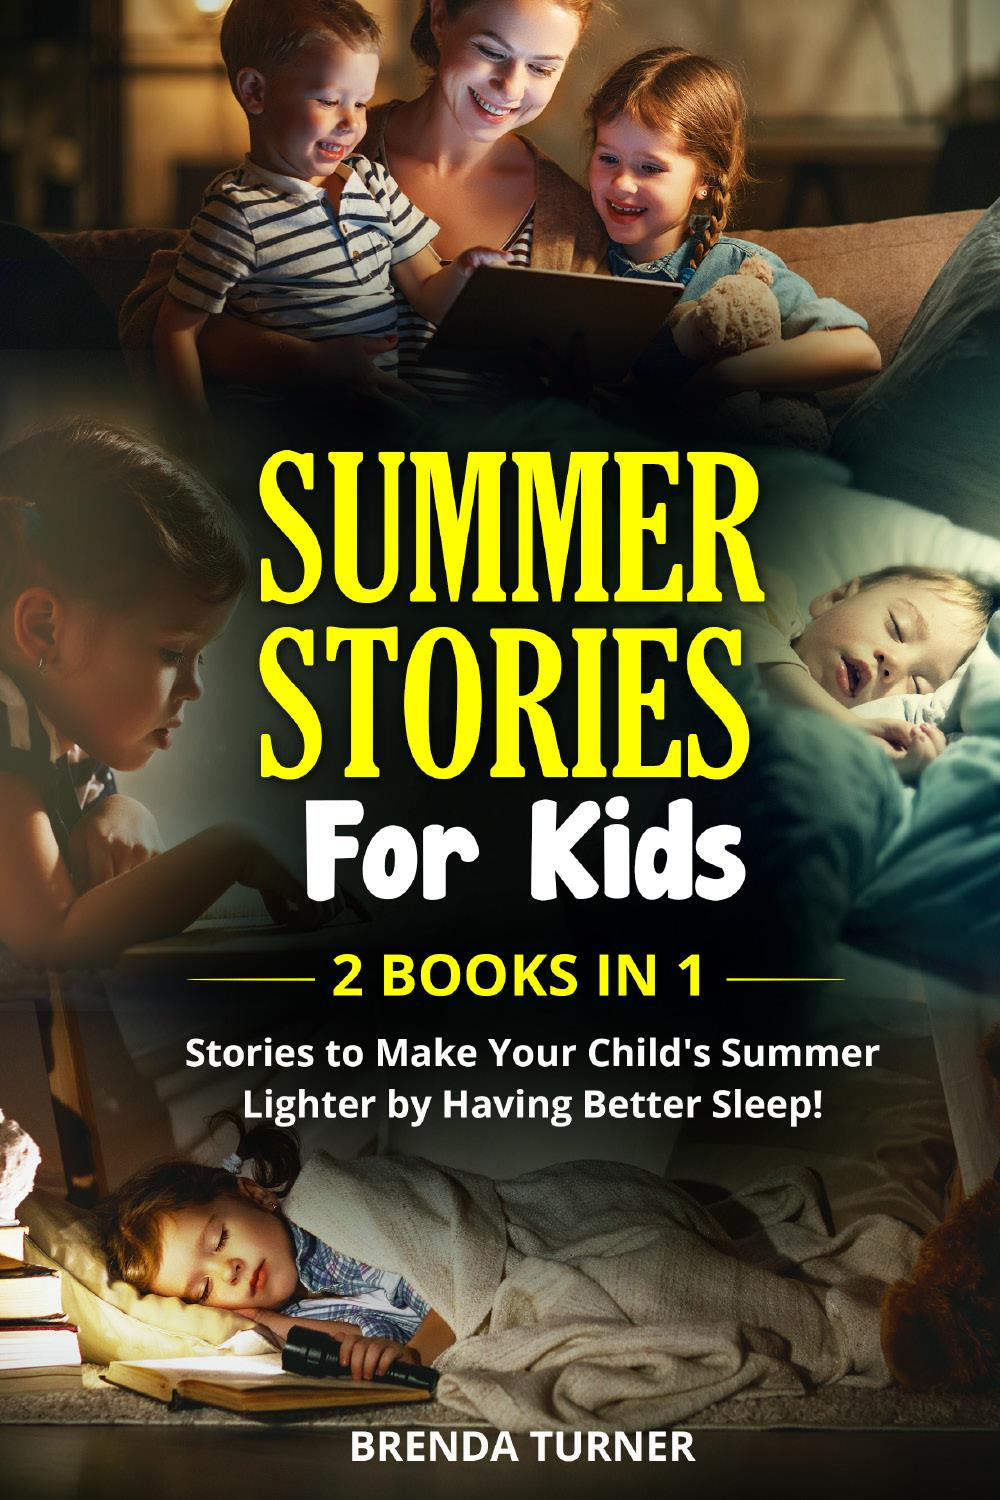 SUMMER STORIES FOR KIDS (2 Books in 1)